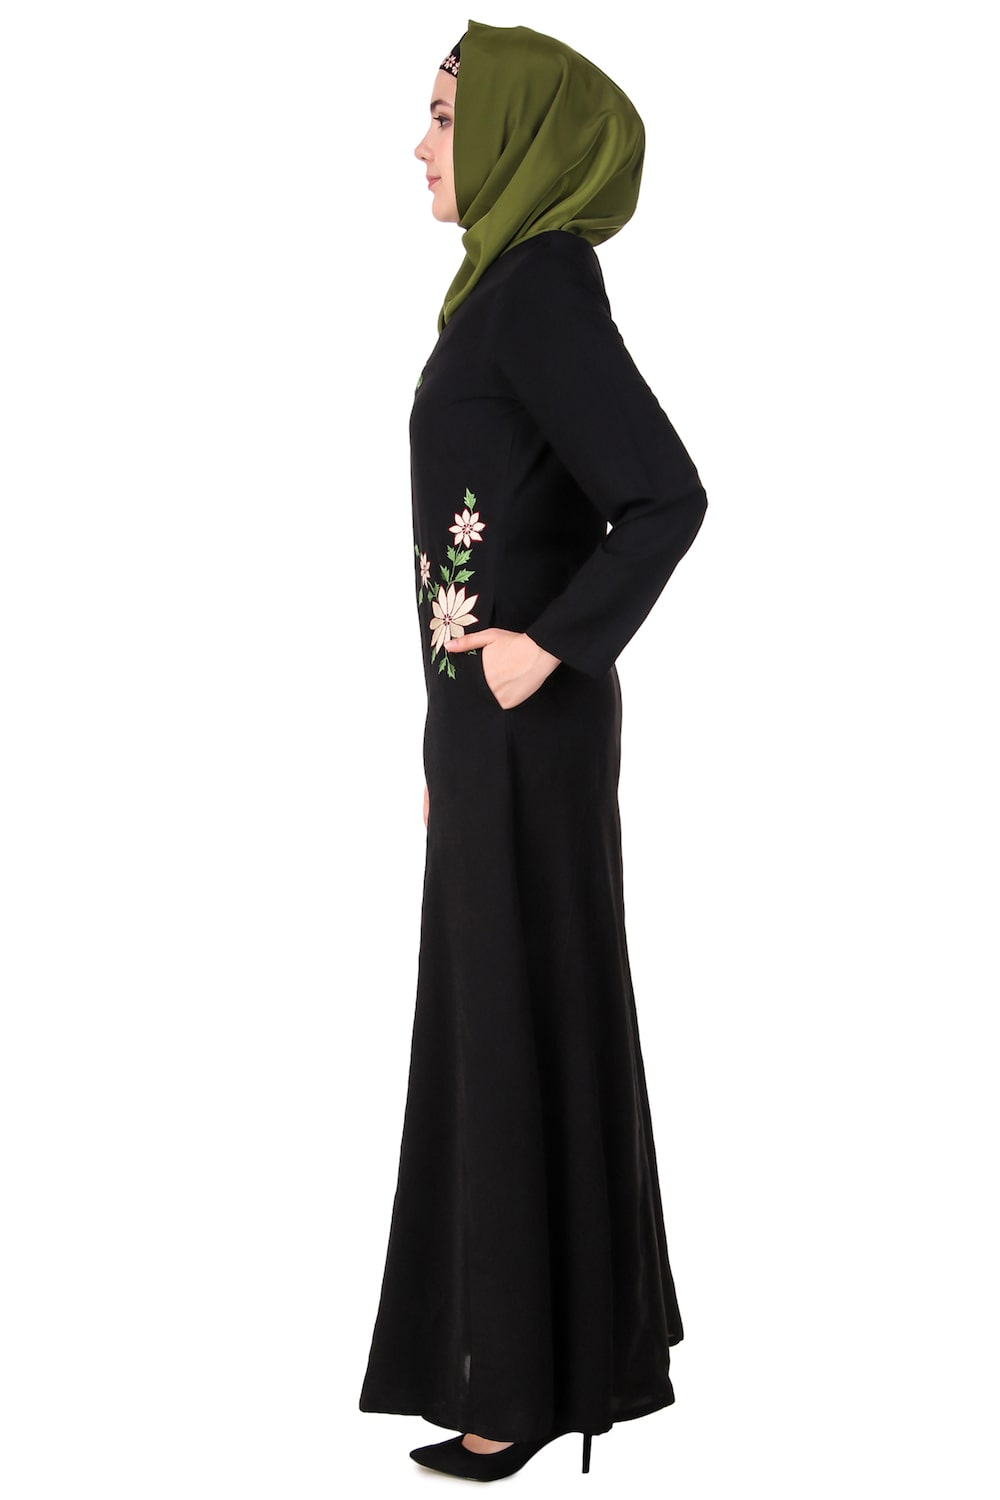 Floral Embroidery Nida Flared Abaya Side